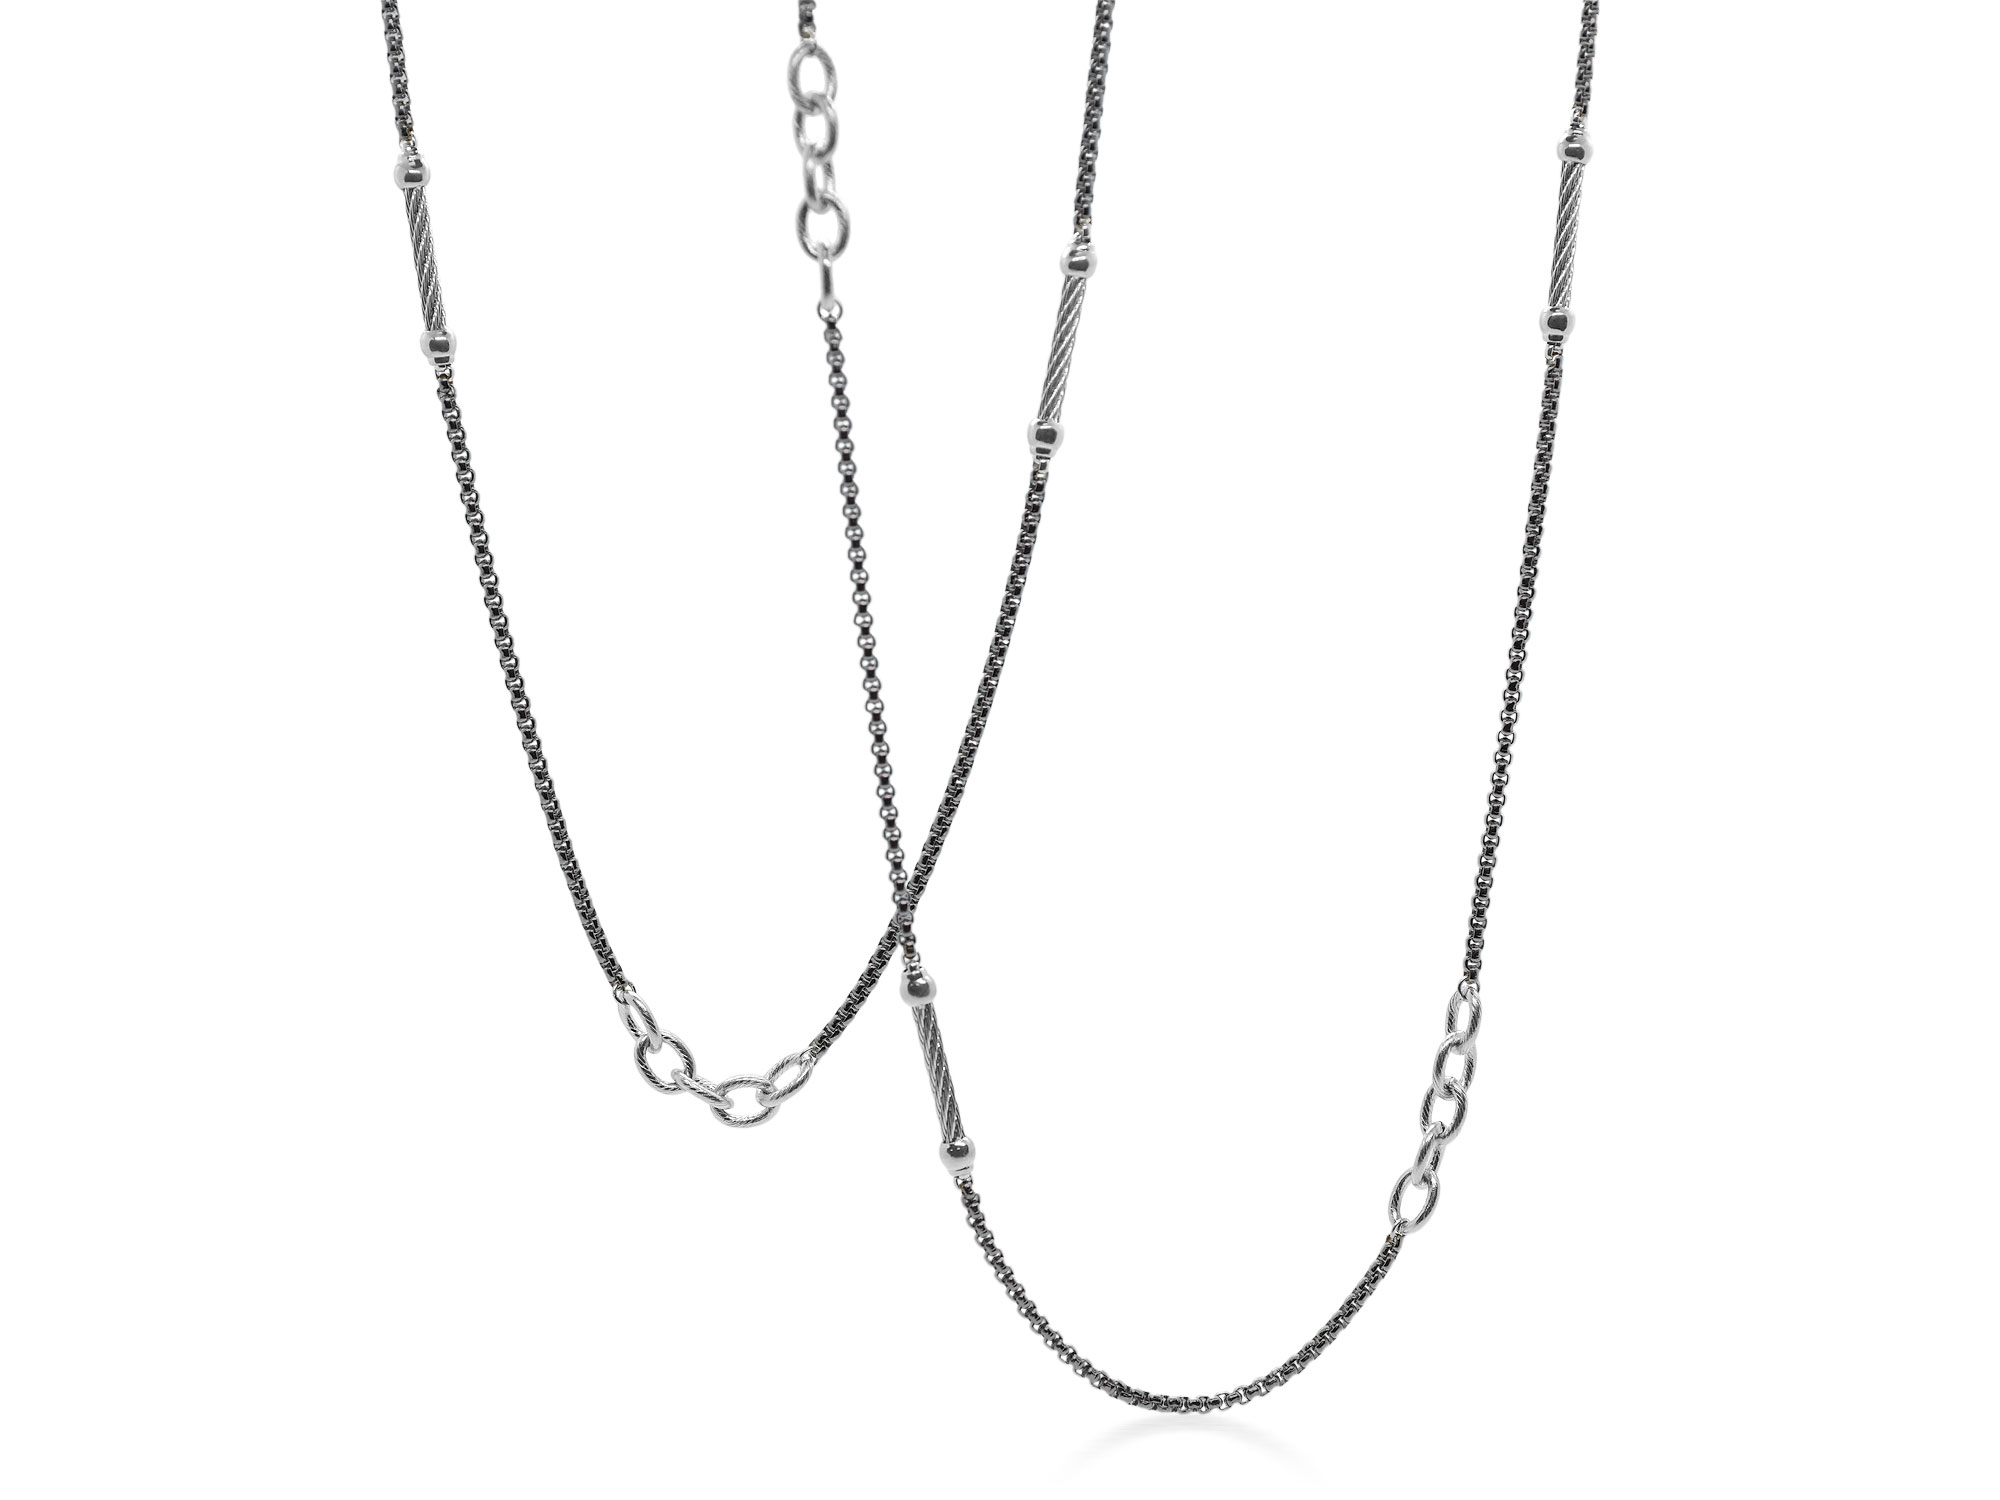 Grey and Black stainless steel chain necklace, necklace length 36″. Imported. SKU: 08-54-0064-00